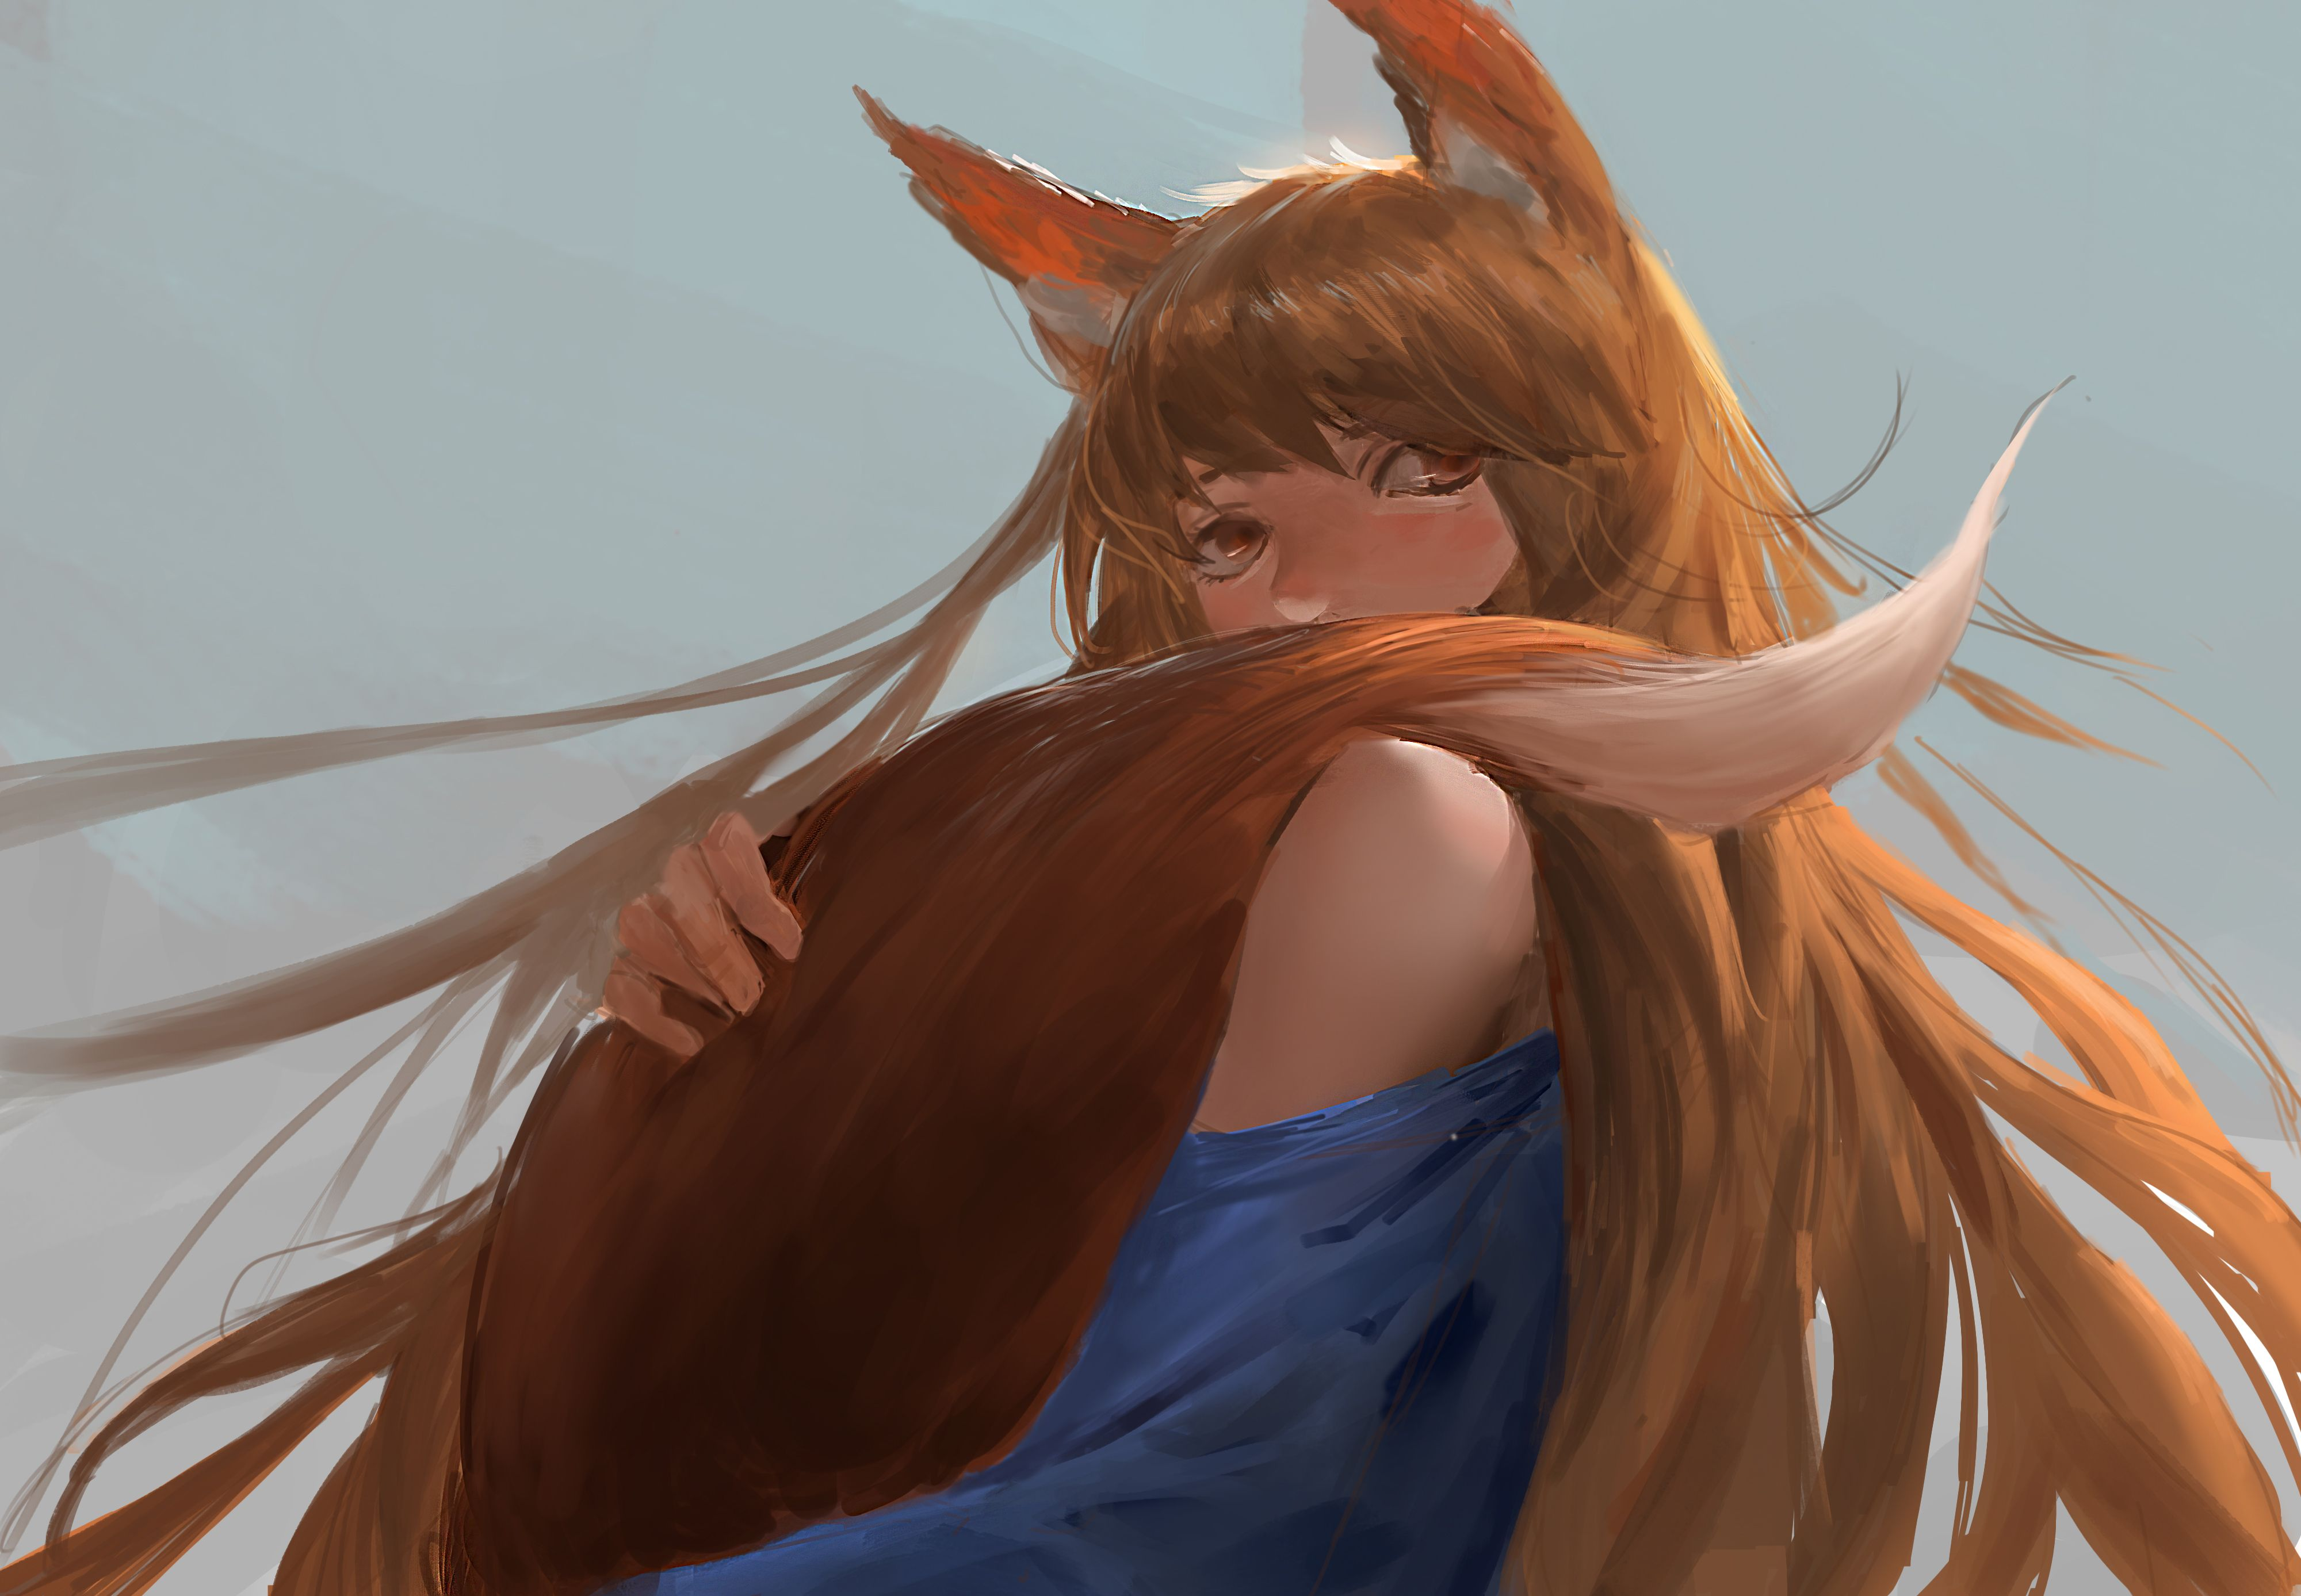 Download anime 4k,uhd wallpapers apk 3.8 for android. 4k Anime Wolf Girl Wallpapers - Wallpaper Cave